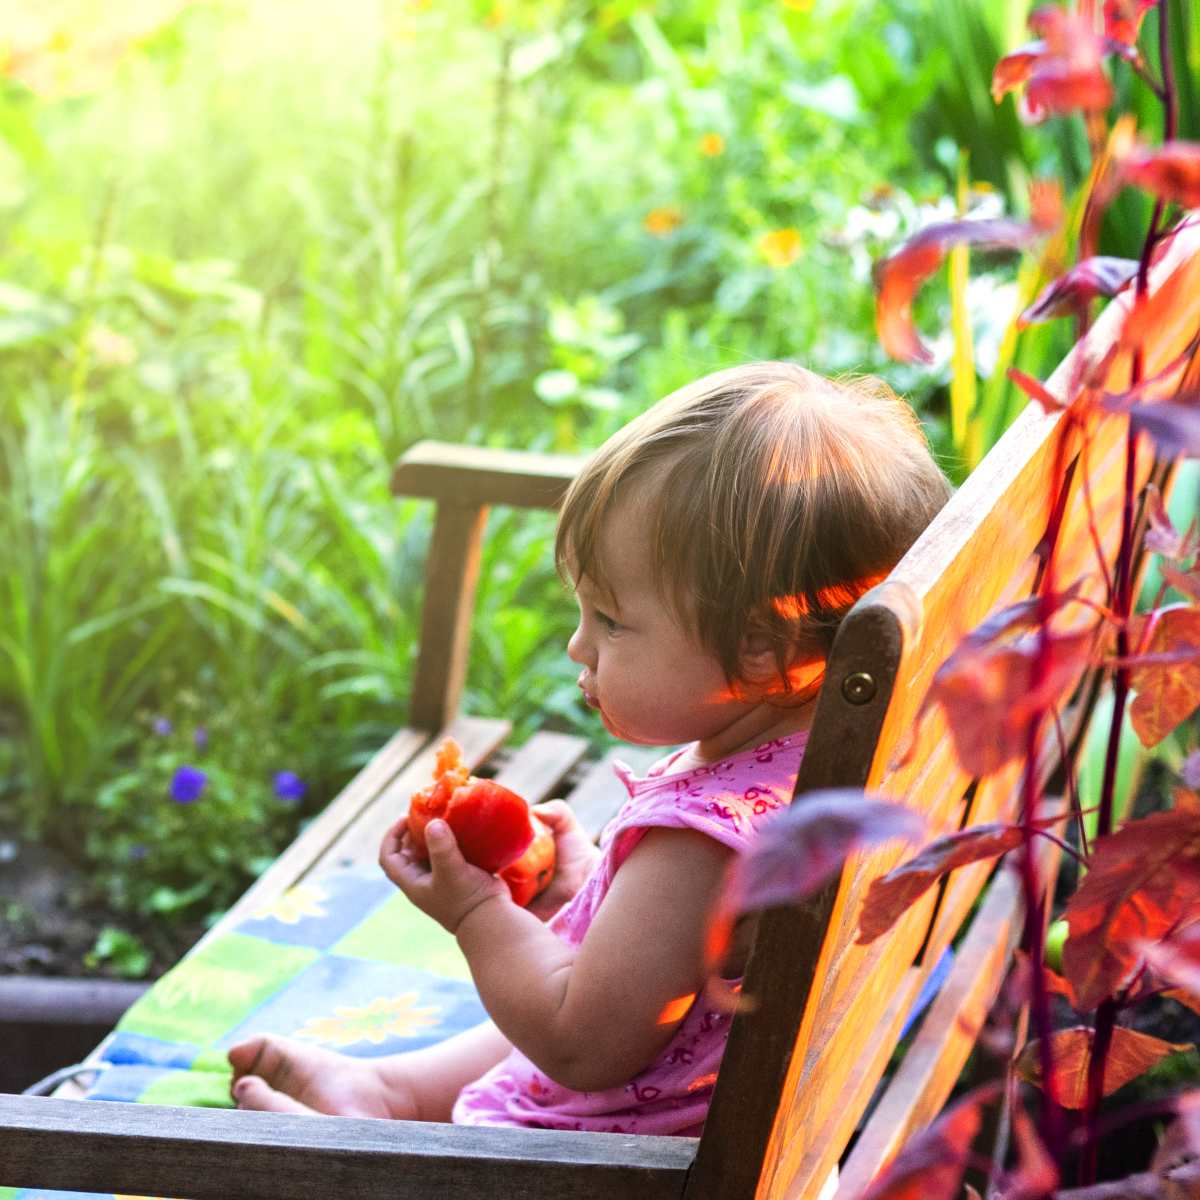 Easy-growing tomatoes is child's play, like this toddler savoring a tomato on a bench.